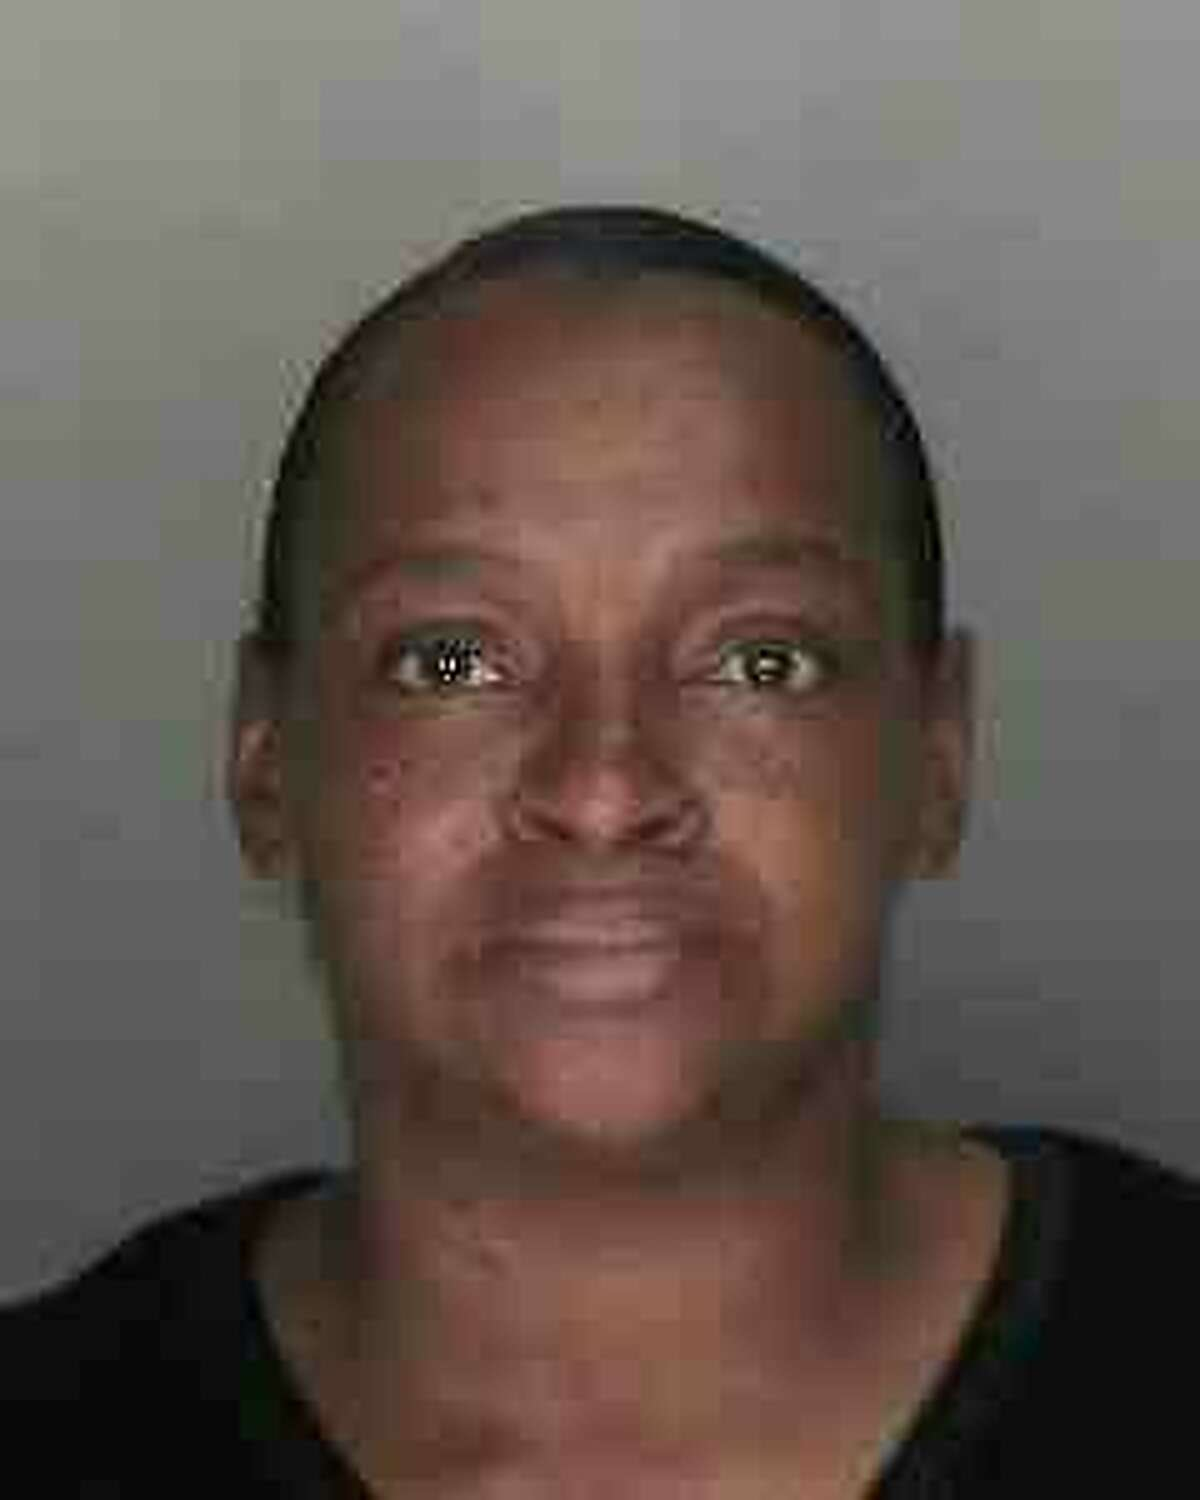 Jacqueline M. Smalls, 49, of Van Vranken Avenue, Schenectady was arrested Monday, Aug. 27, 2012 after allegedly stabbing her boyfriend, Adrian King, 51, to death. Smalls was charged with first-degree manslaughter. (Schenectady Police Department)